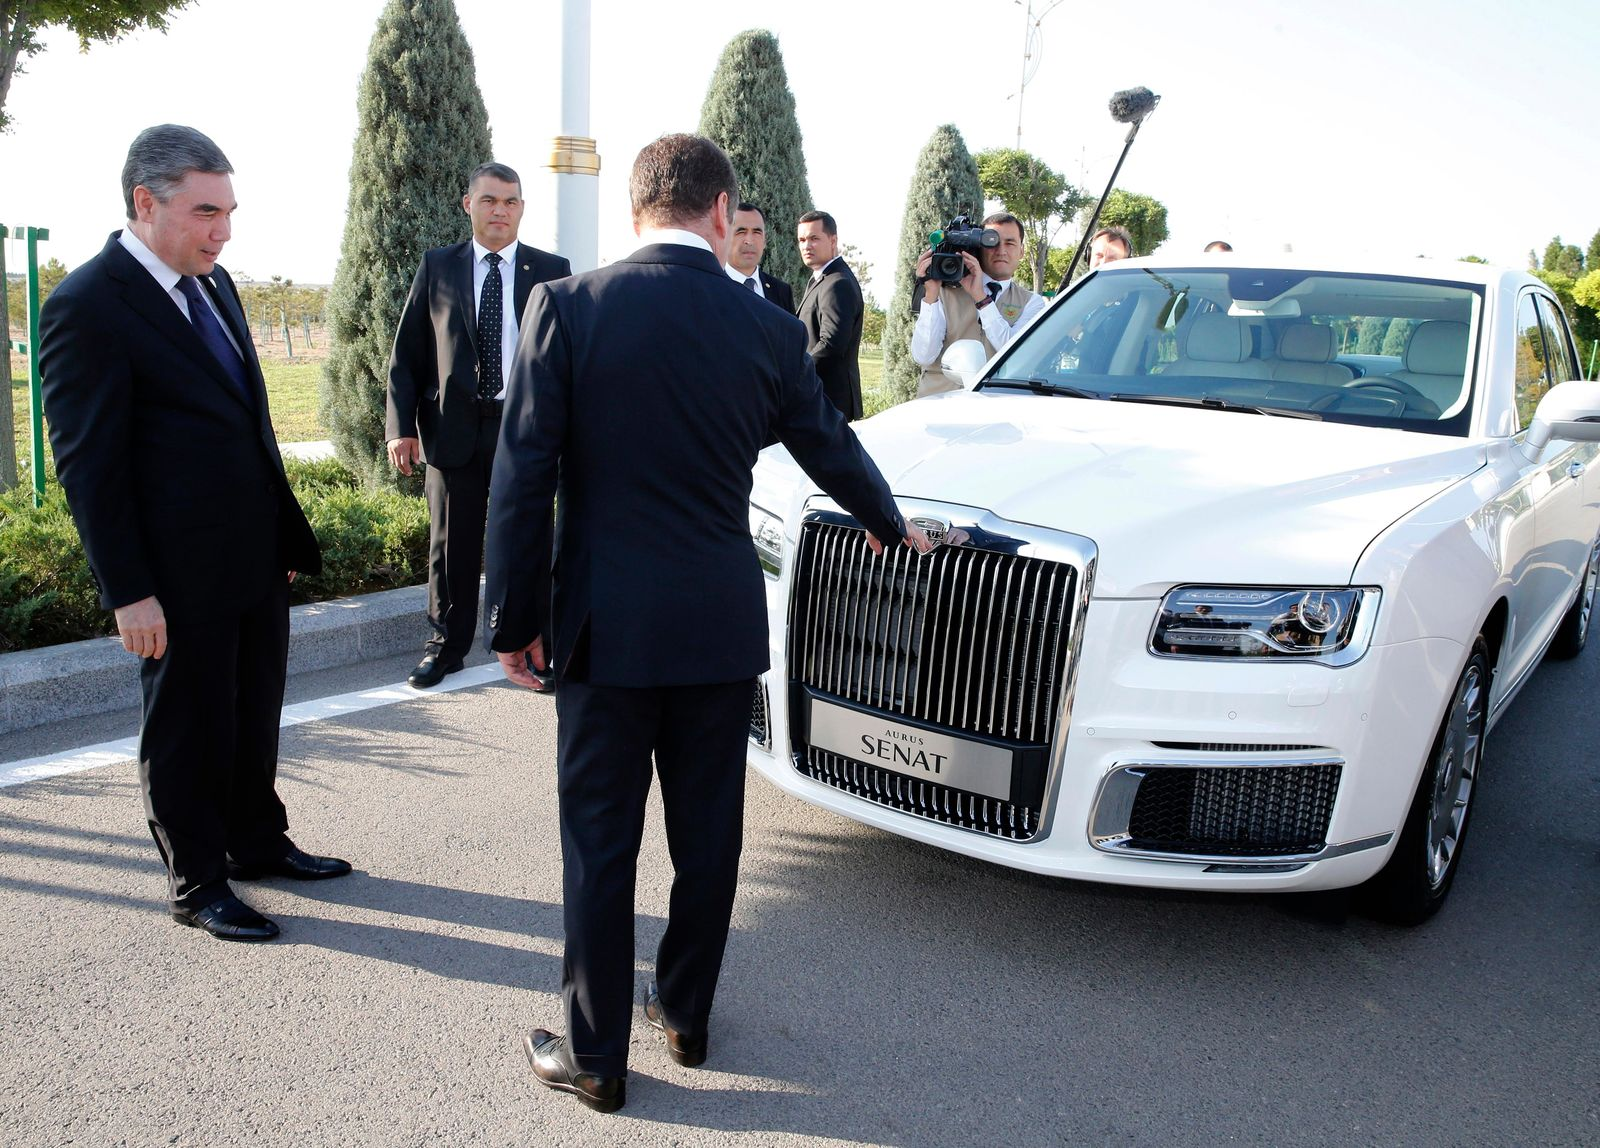 Russian Prime Minister Dmitry Medvedev, back to a camera, shows Turkmenistan's President Gurbanguly Berdymukhamedov a Russian made limousine Aurus Senat prior to a session of the First Caspian Economic Forum in Turkmenbashi, Turkmenistan, Monday, Aug. 12, 2019. (Dmitry Astakhov, Sputnik, Government Pool Photo via AP)